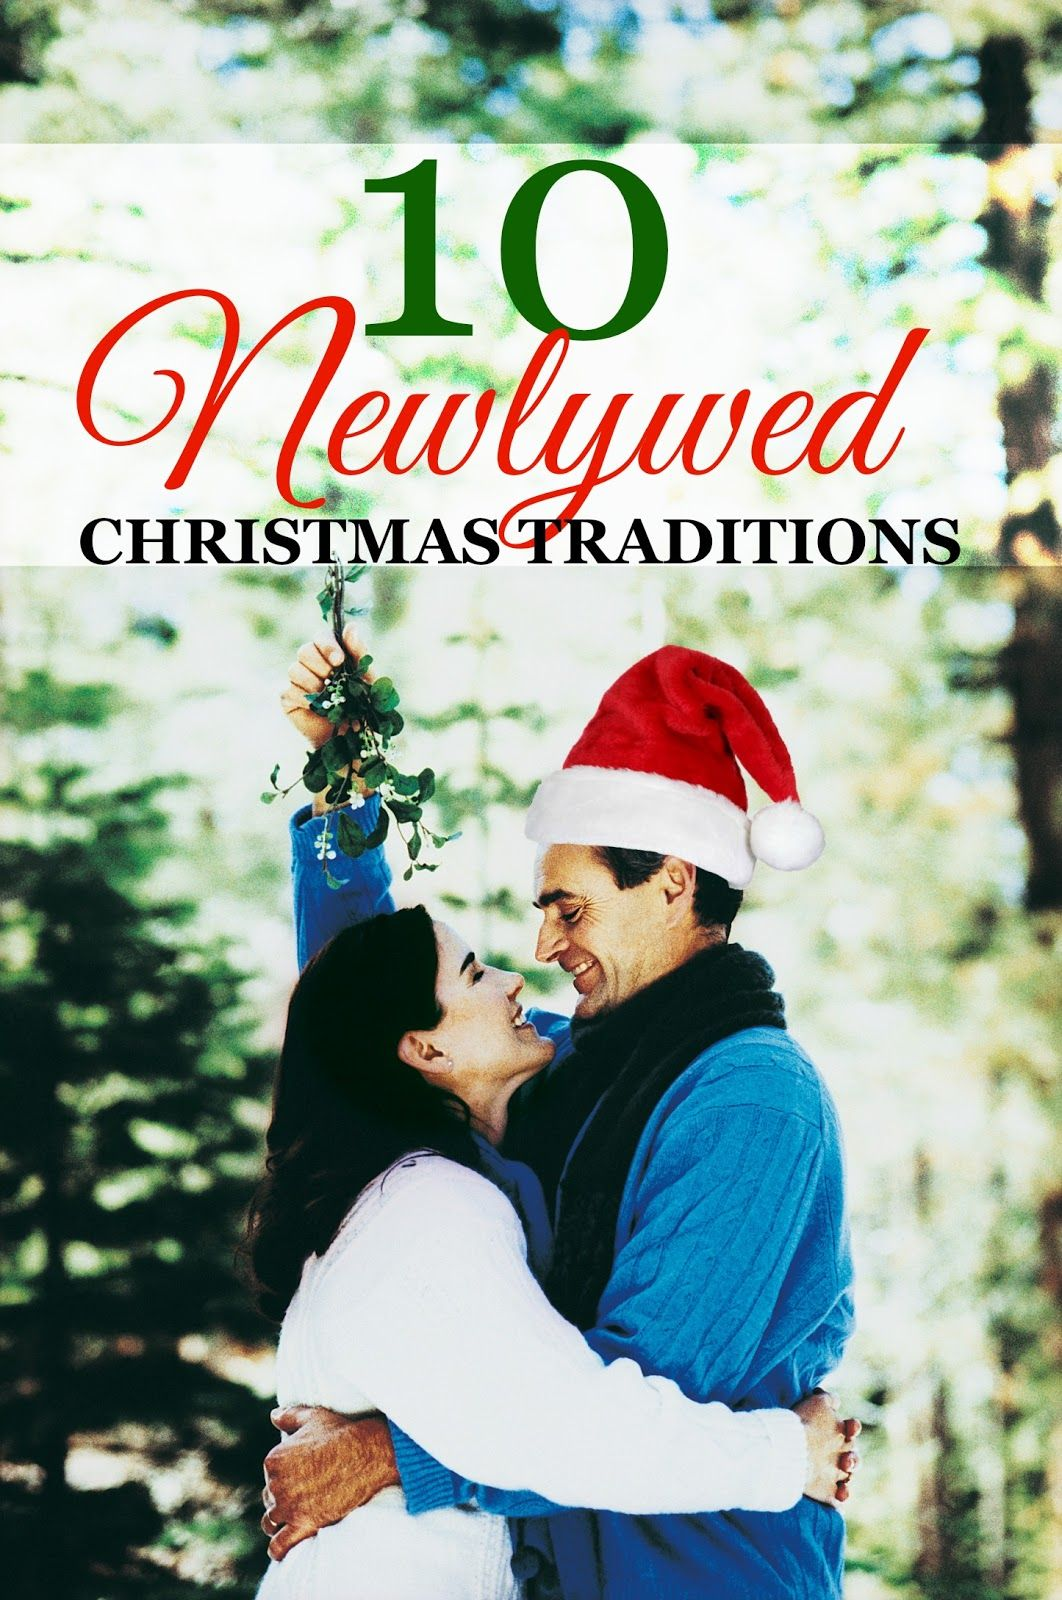 Newlywed Christmas Traditions | Christmas traditions, Holidays and ...